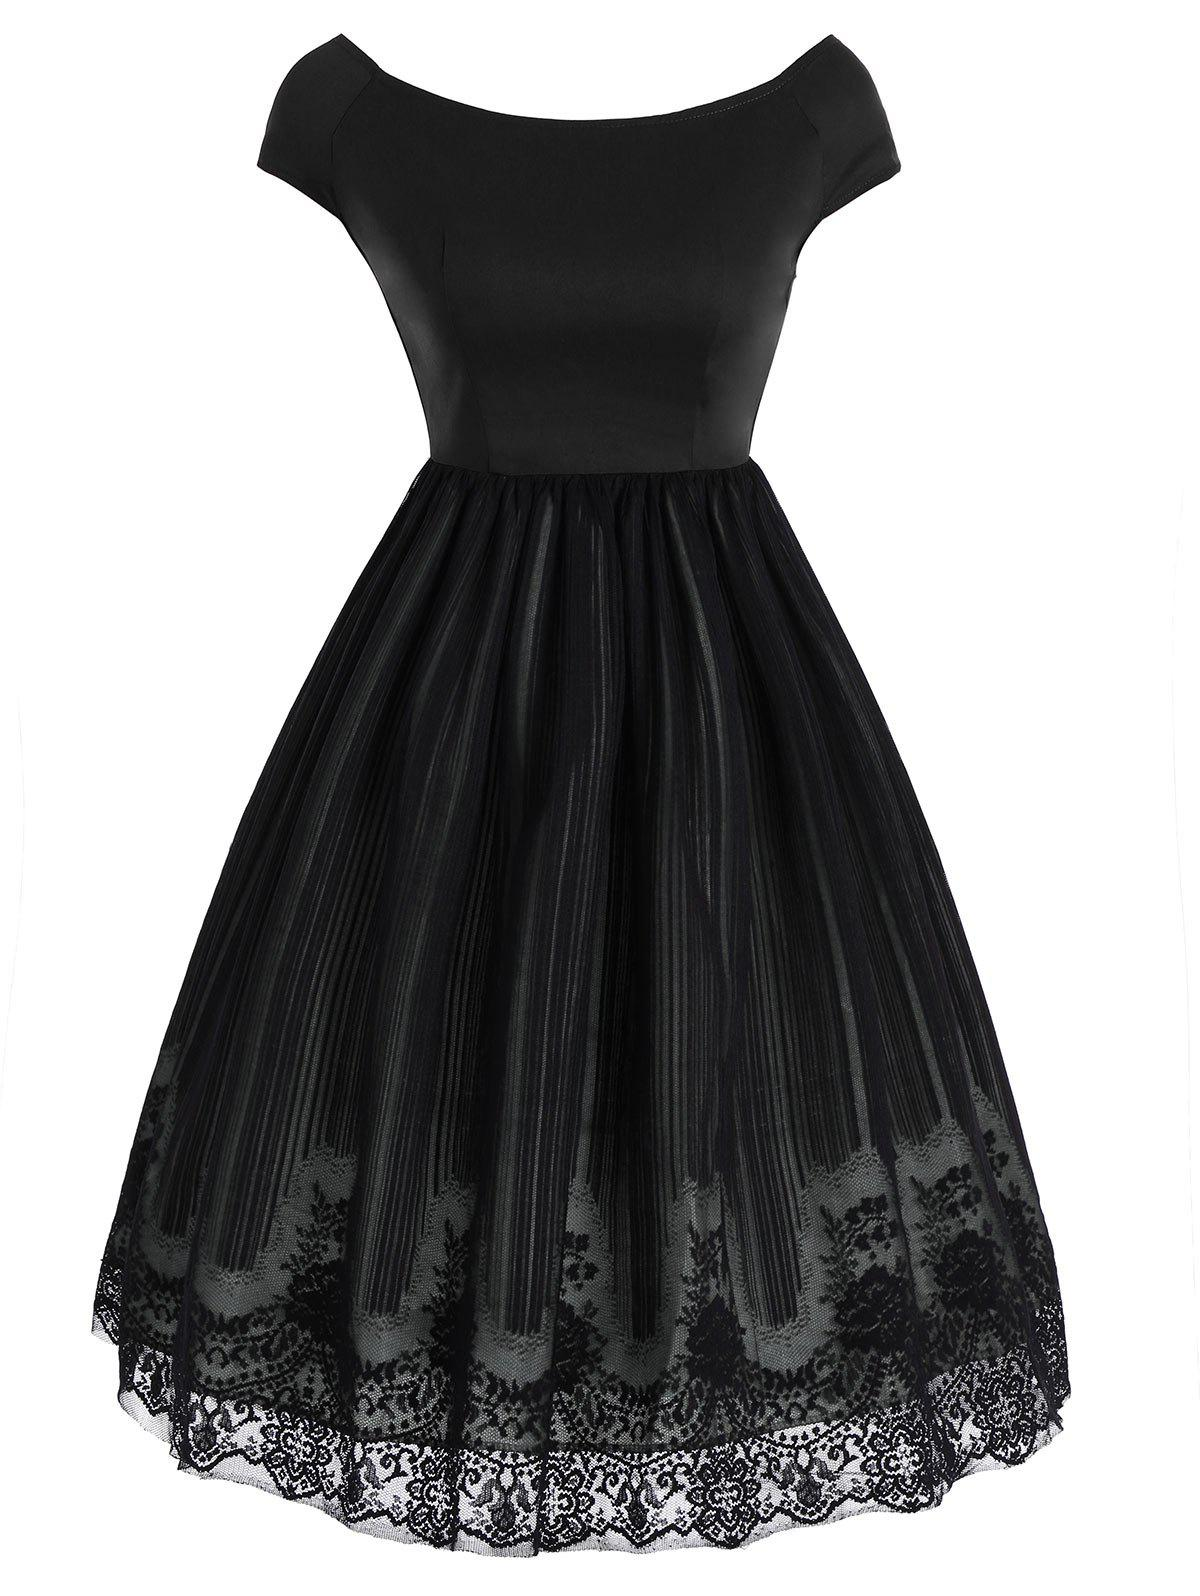 Store Vintage Lace Panel Overlay Dress